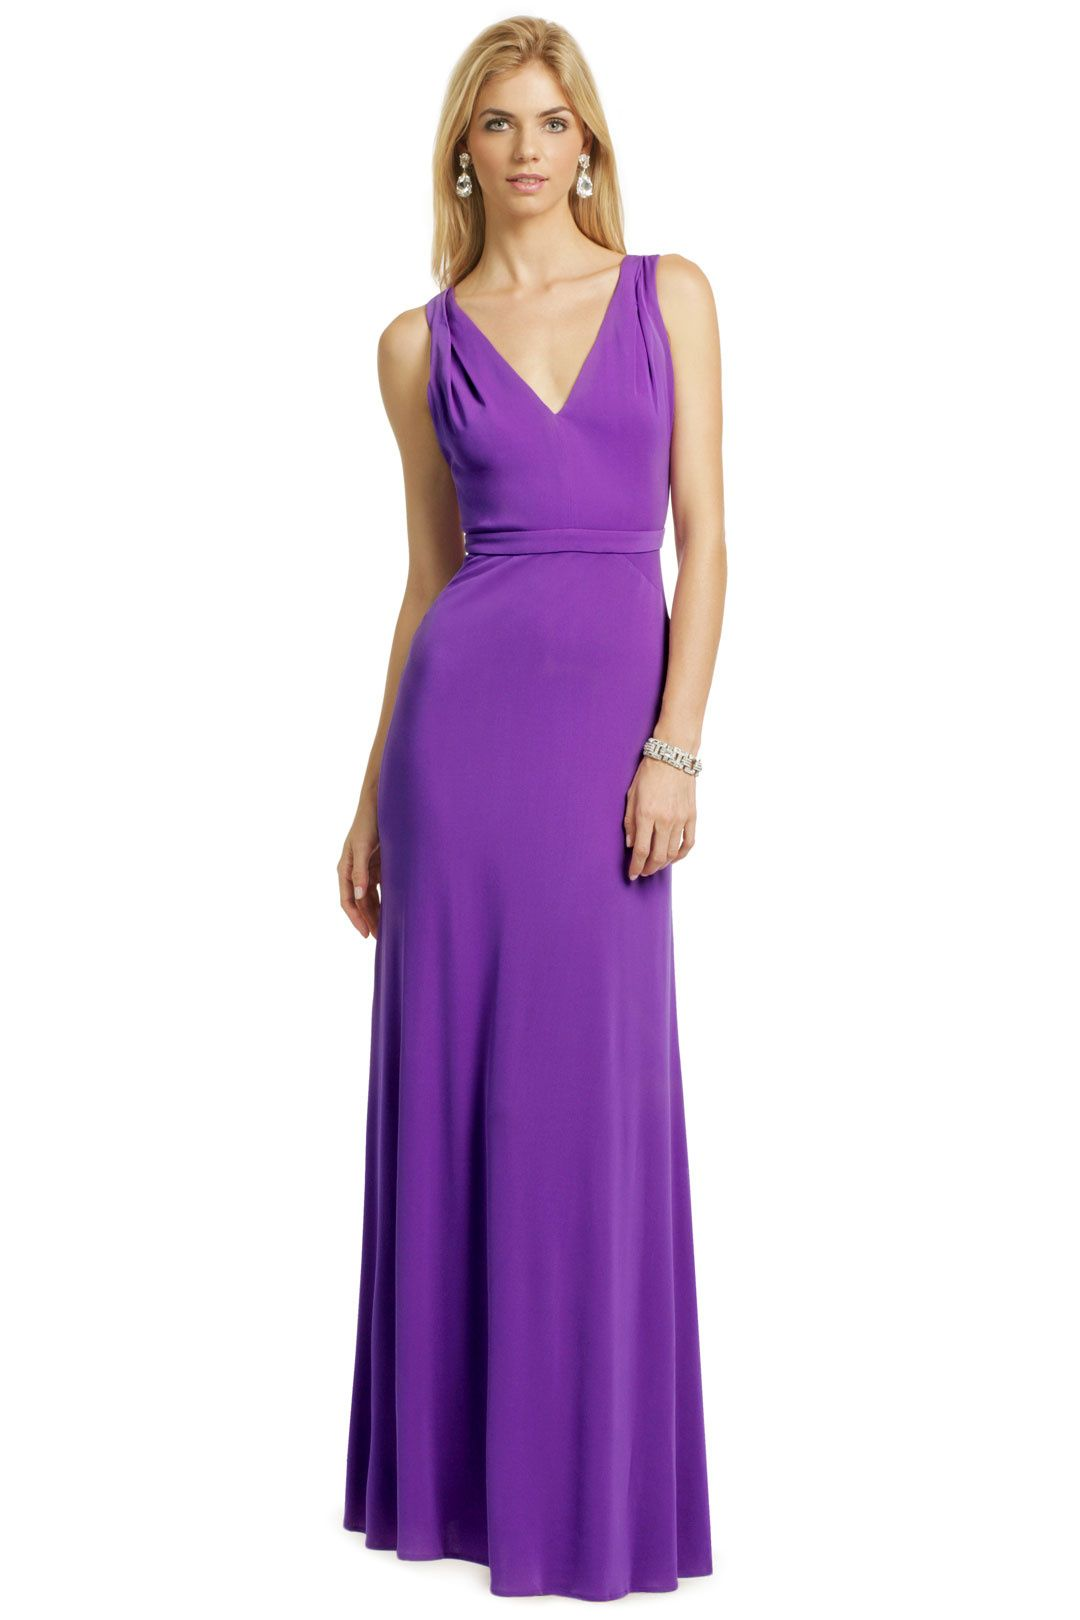 Morning Glory Gown | Issa, Gowns and Ball gowns